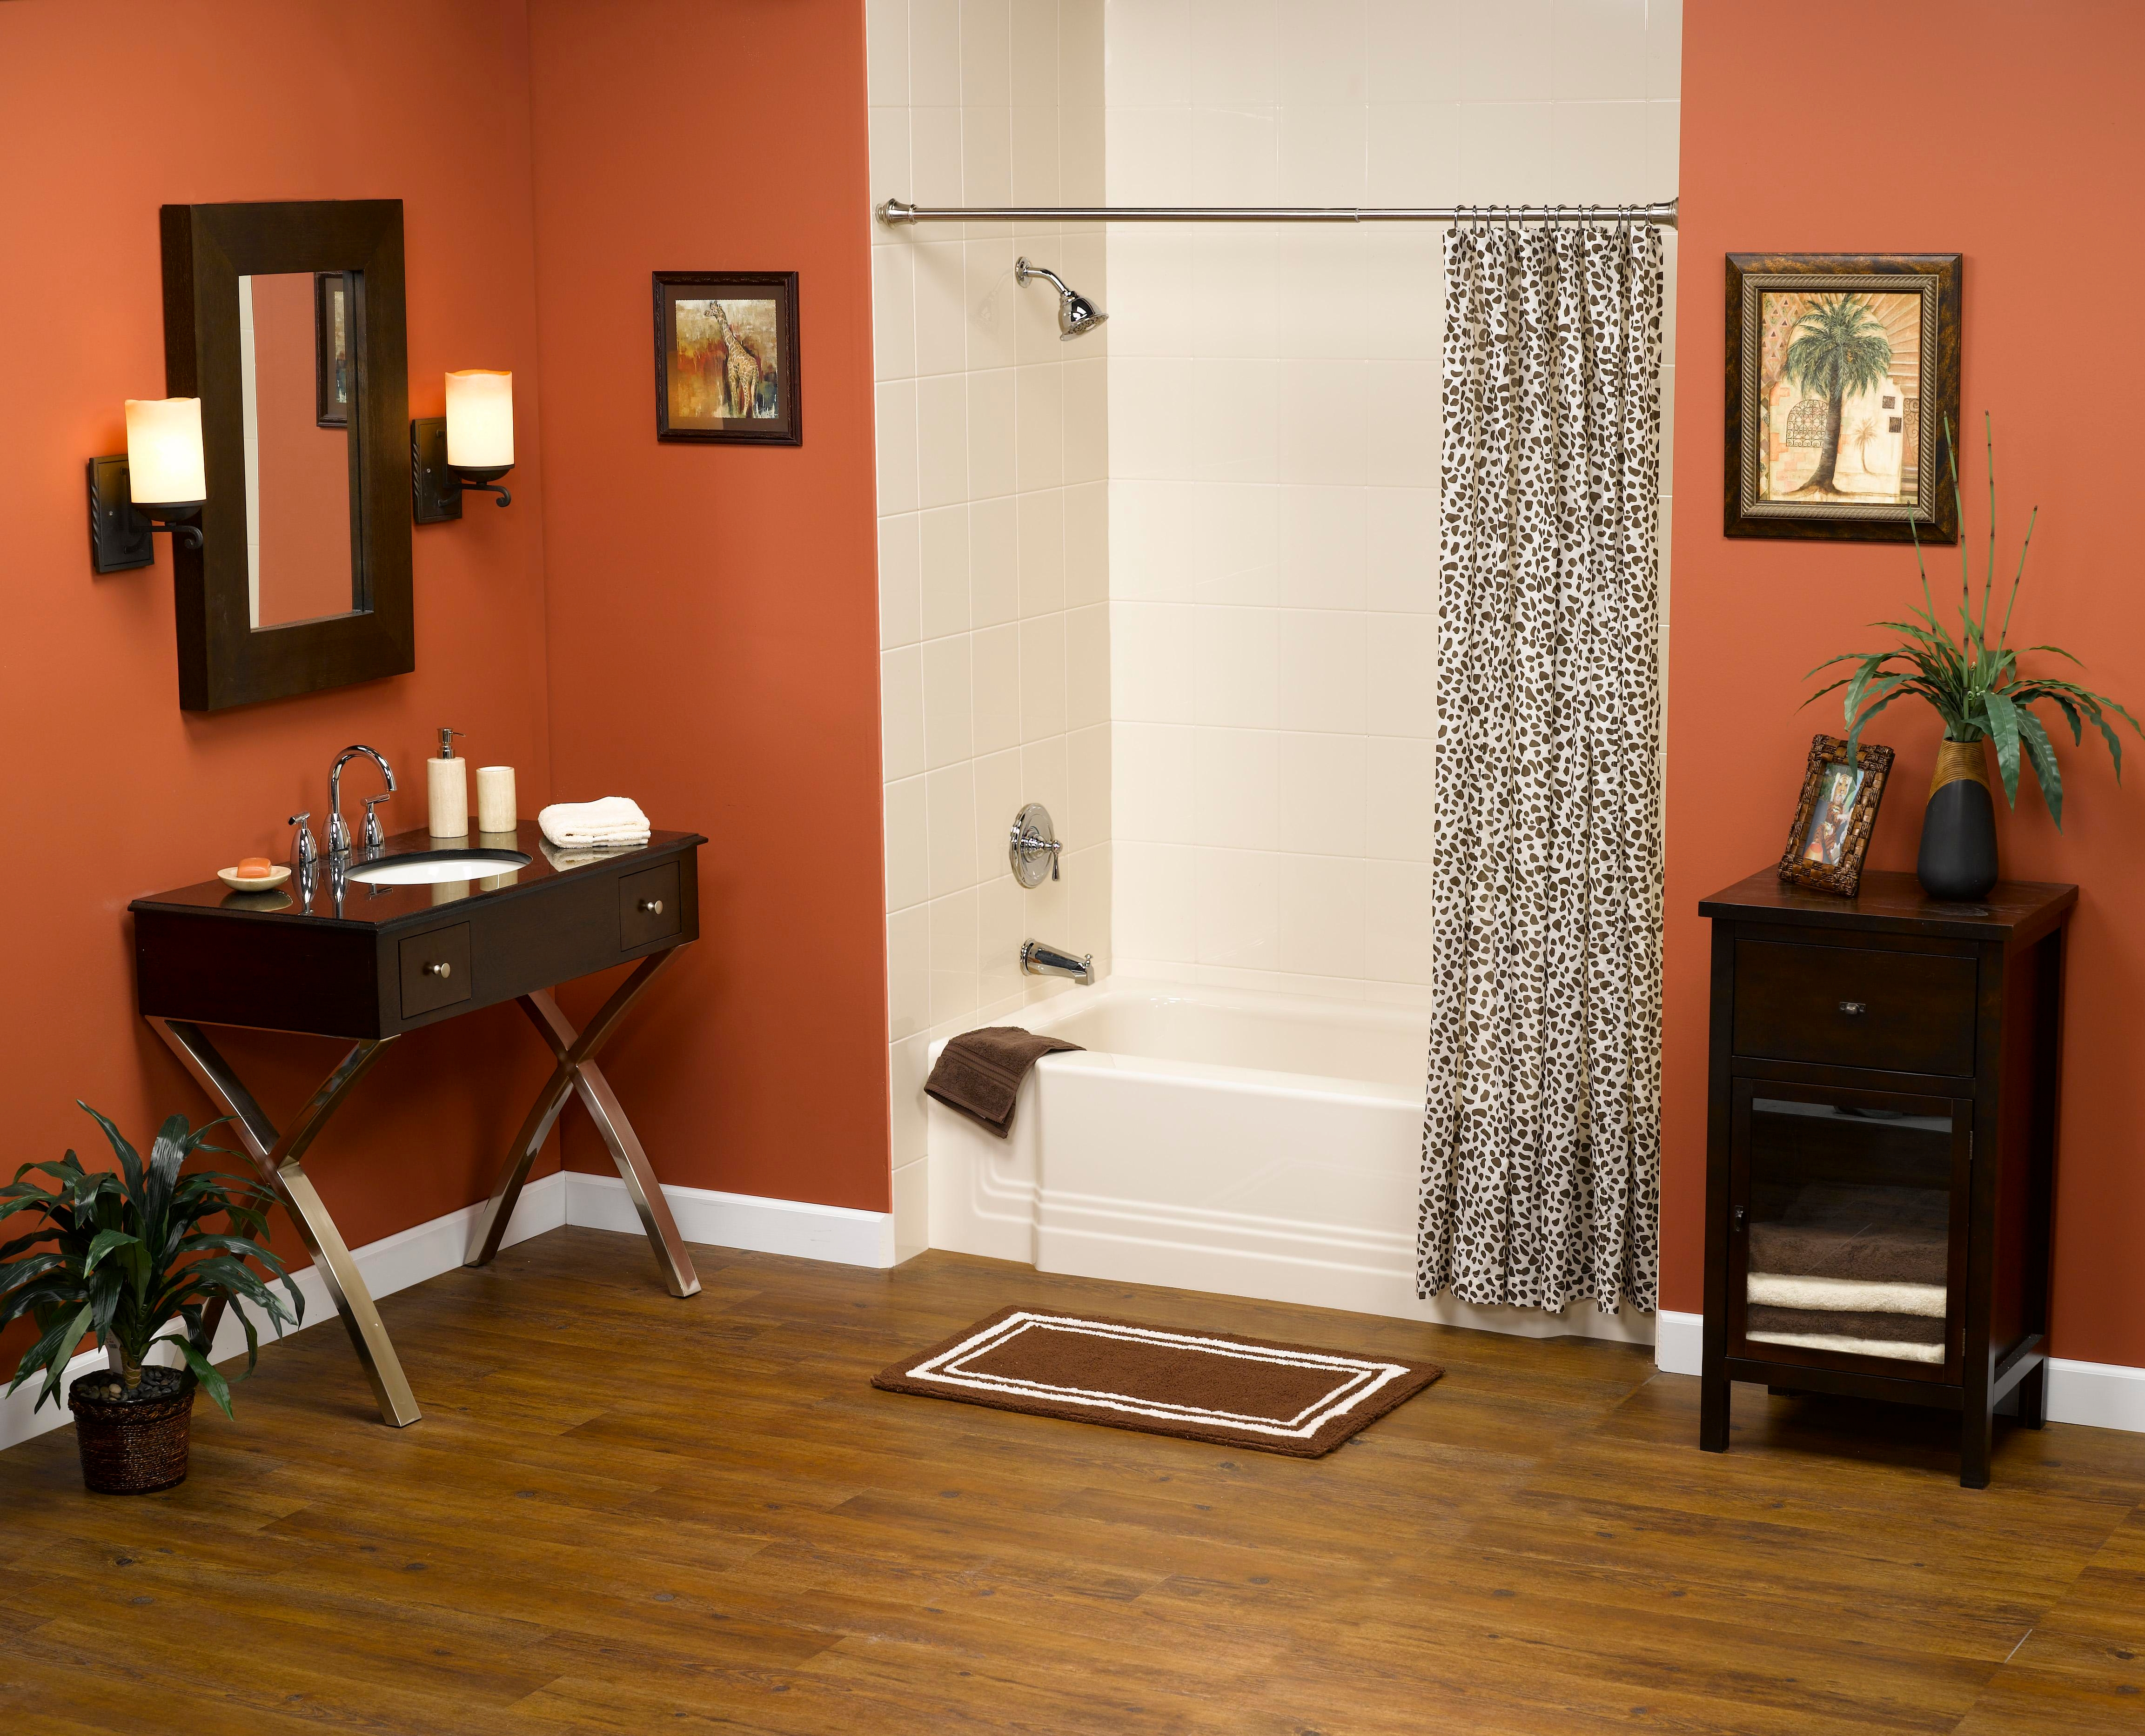 Green Star Home Remodeling Group Llc In Louisville Ky